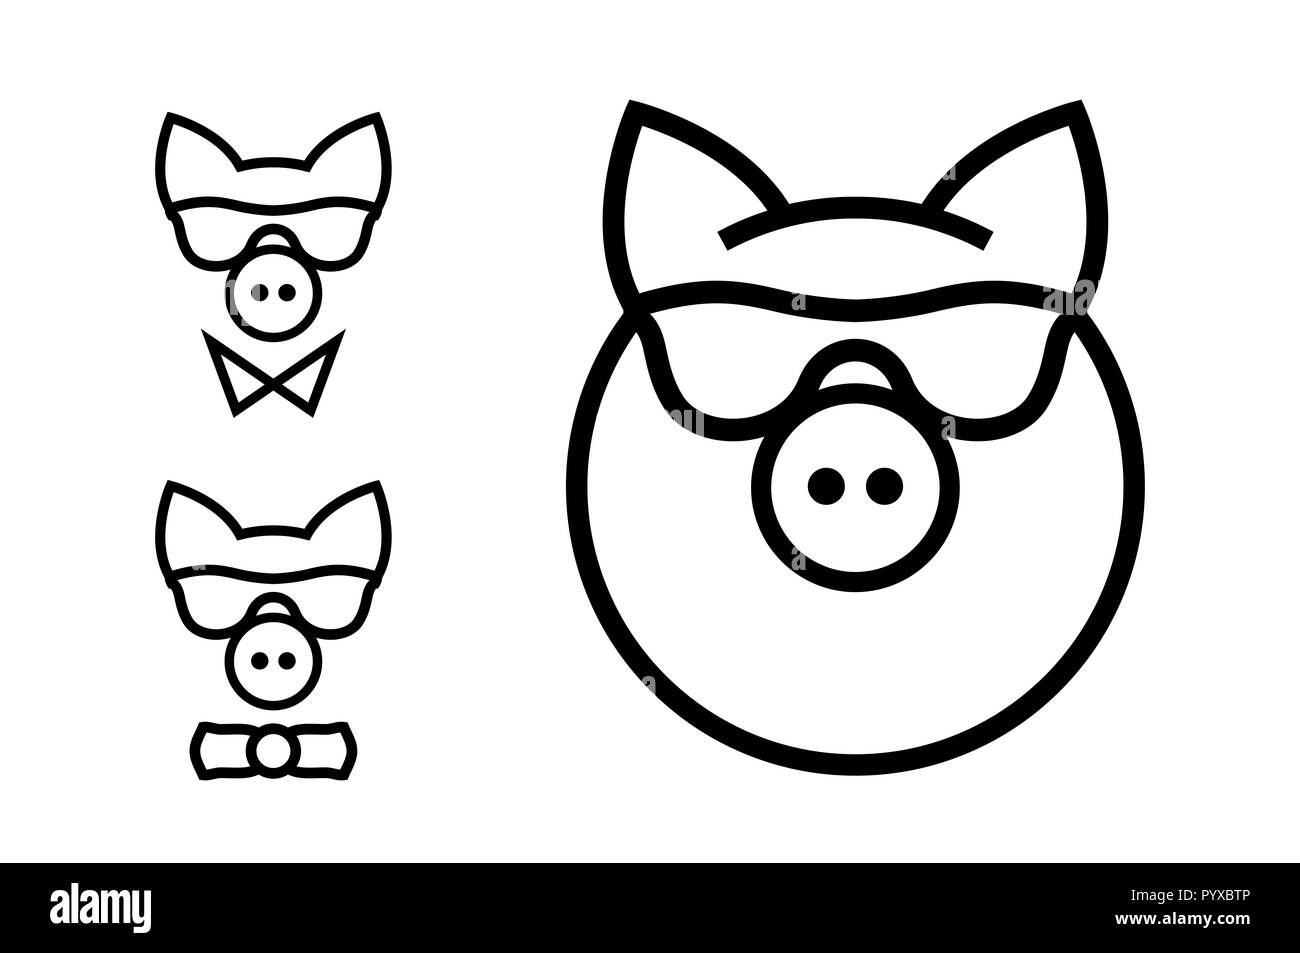 Fashionable Pig Minimalistic Icon. Year of the Pig - 2019. Merry Christmas and Happy New Year Design Elements. Resource for Creating Postcards, Calend - Stock Image